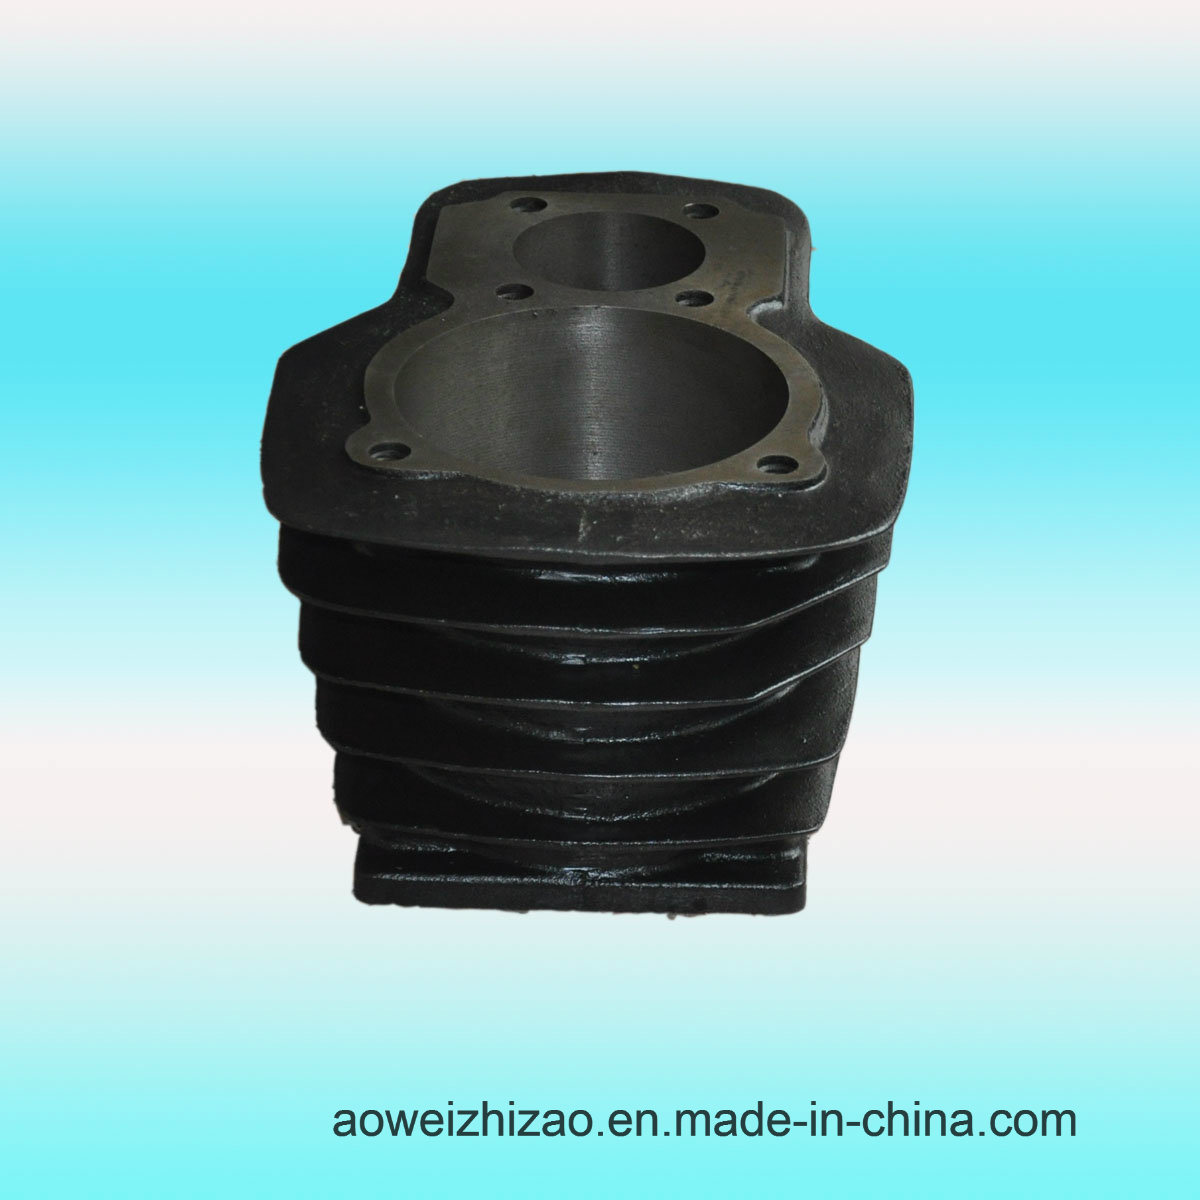 Cylinder Liner, Cylinder Sleeve, EPC, Gray Iron, Ductile Iron, ISO9001: 2008, Awgt-003